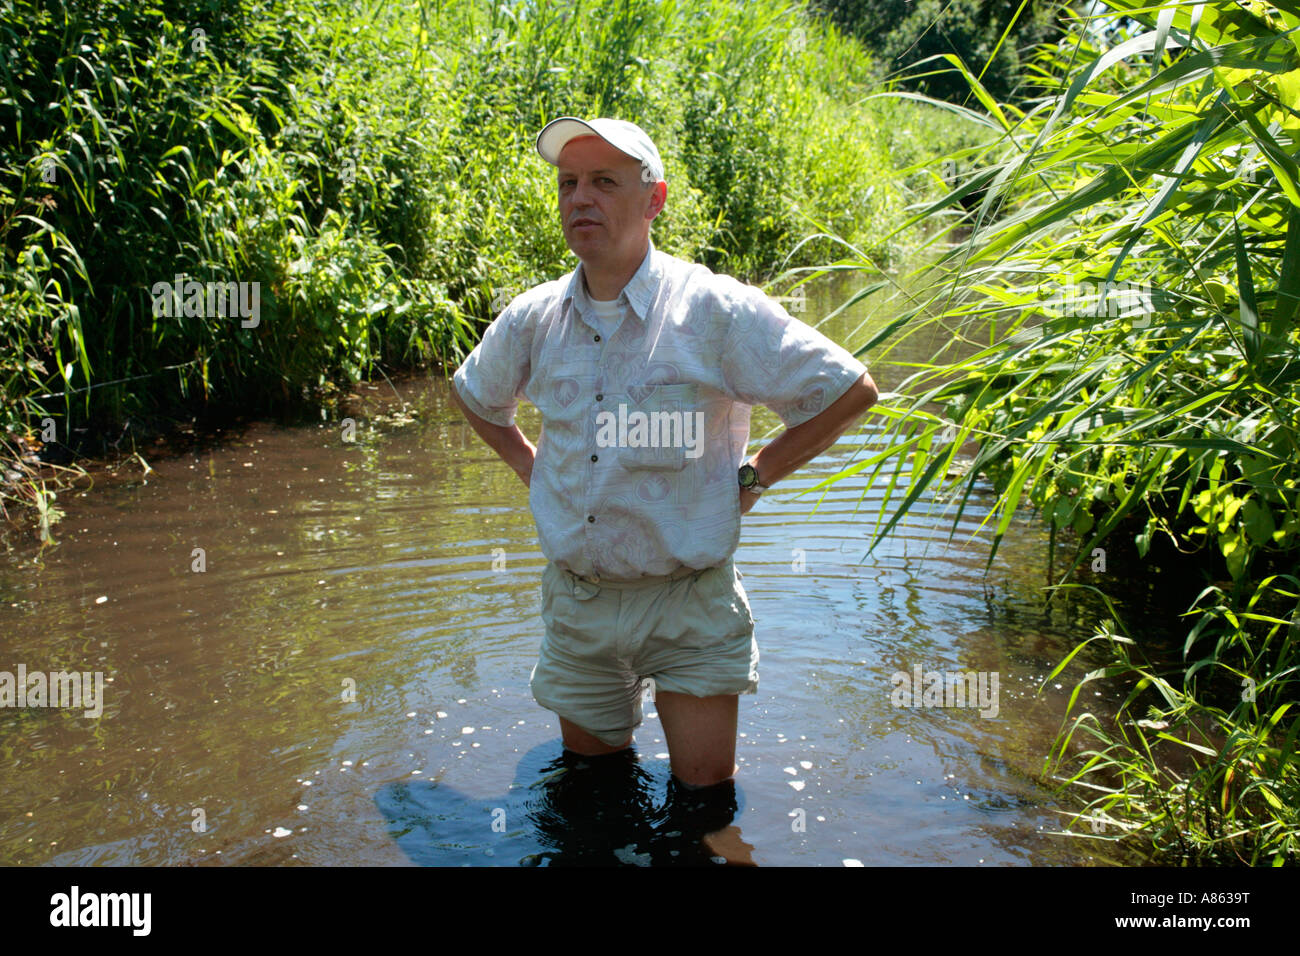 man with turned up trousers standing in a dirty river - Stock Image